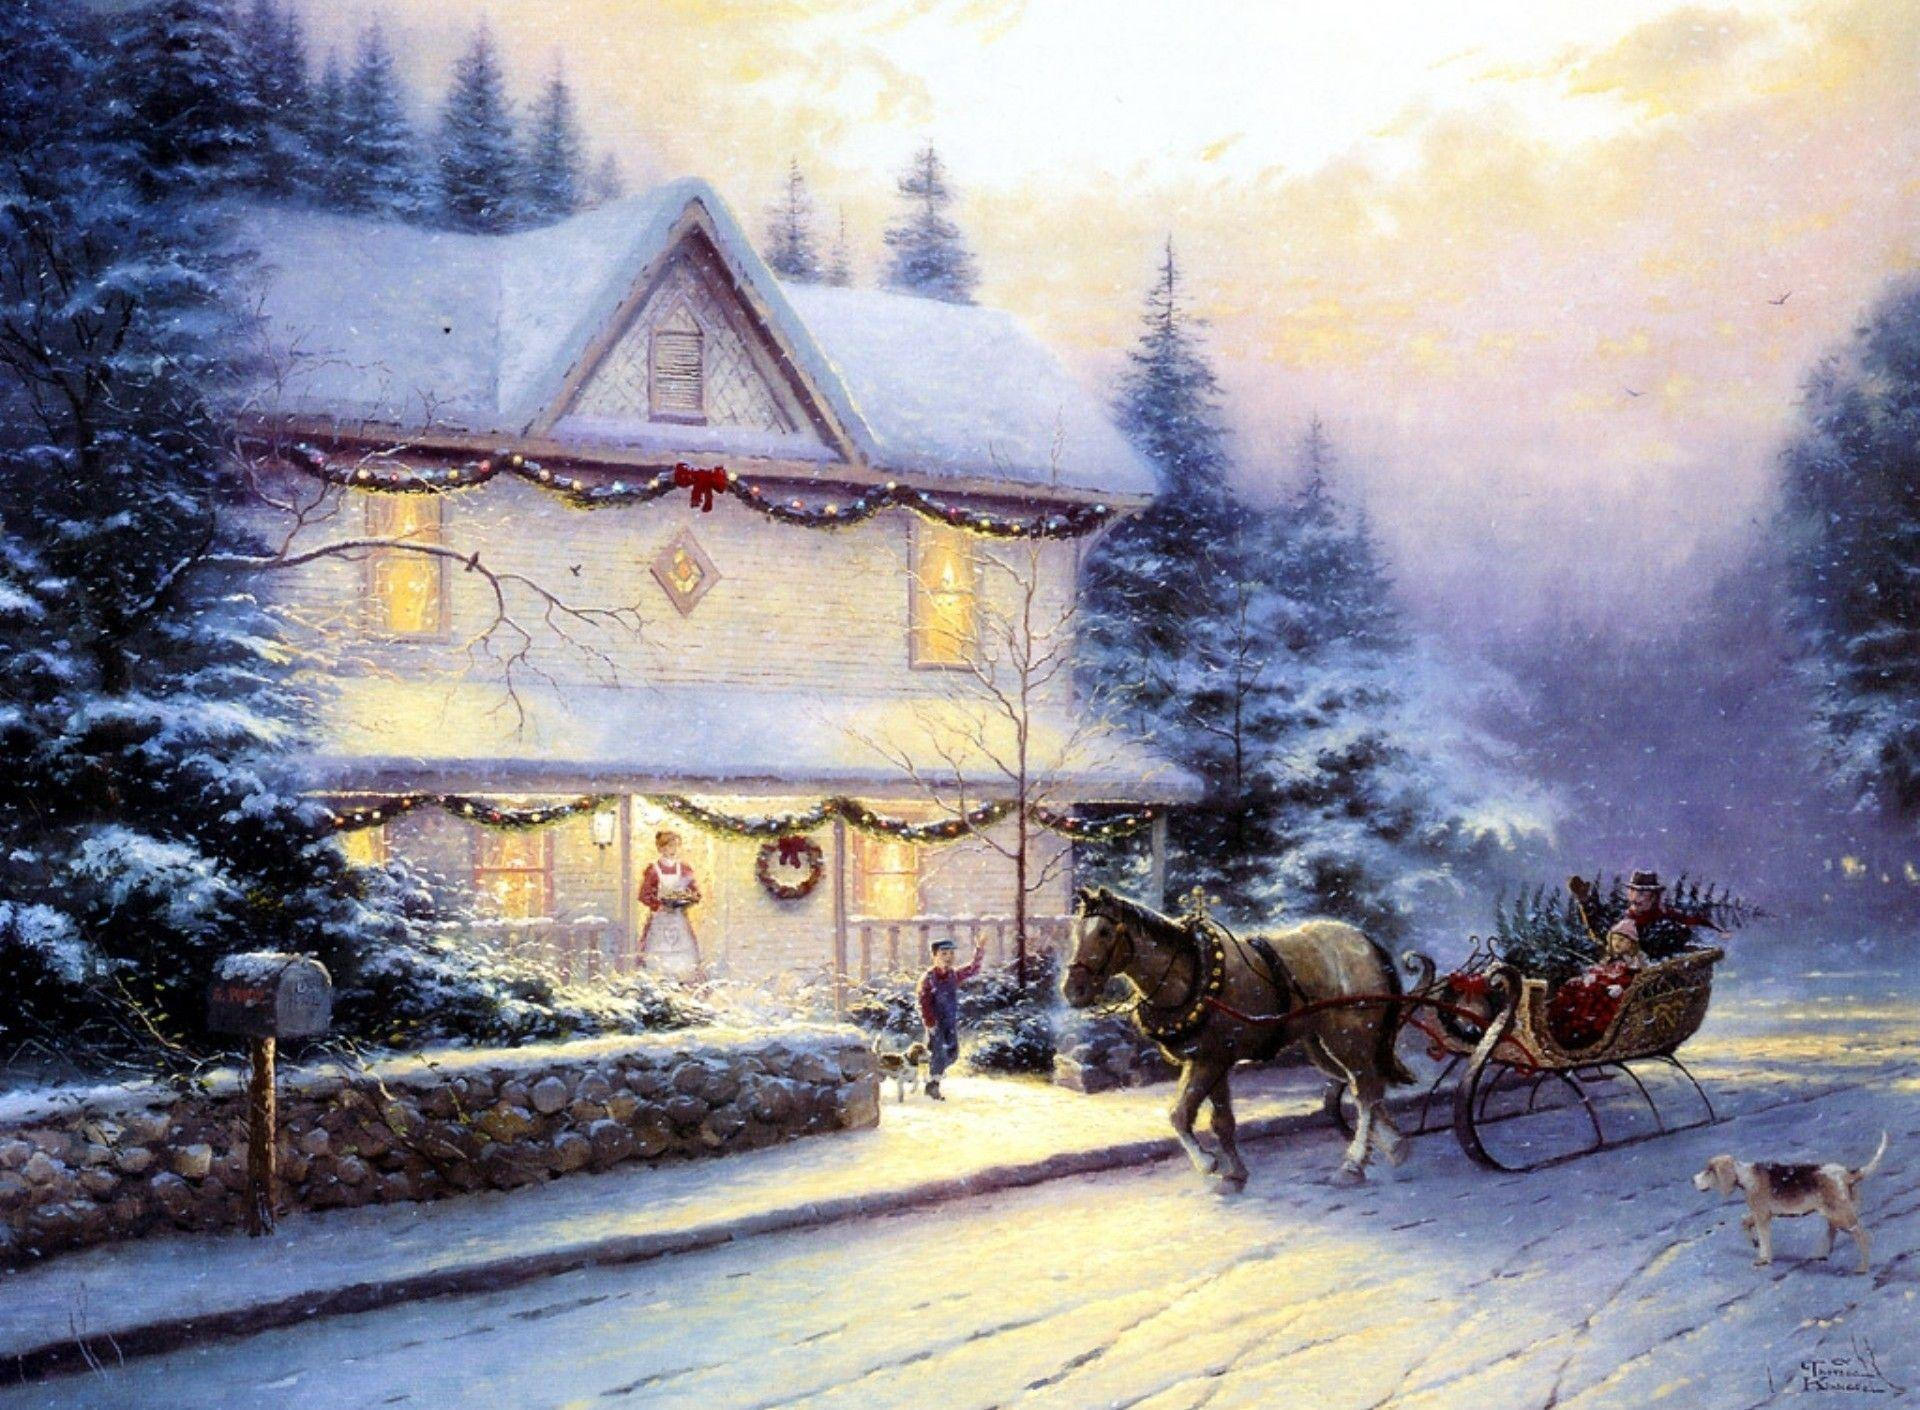 Wallpapers For > Thomas Kinkade Christmas Village Wallpapers